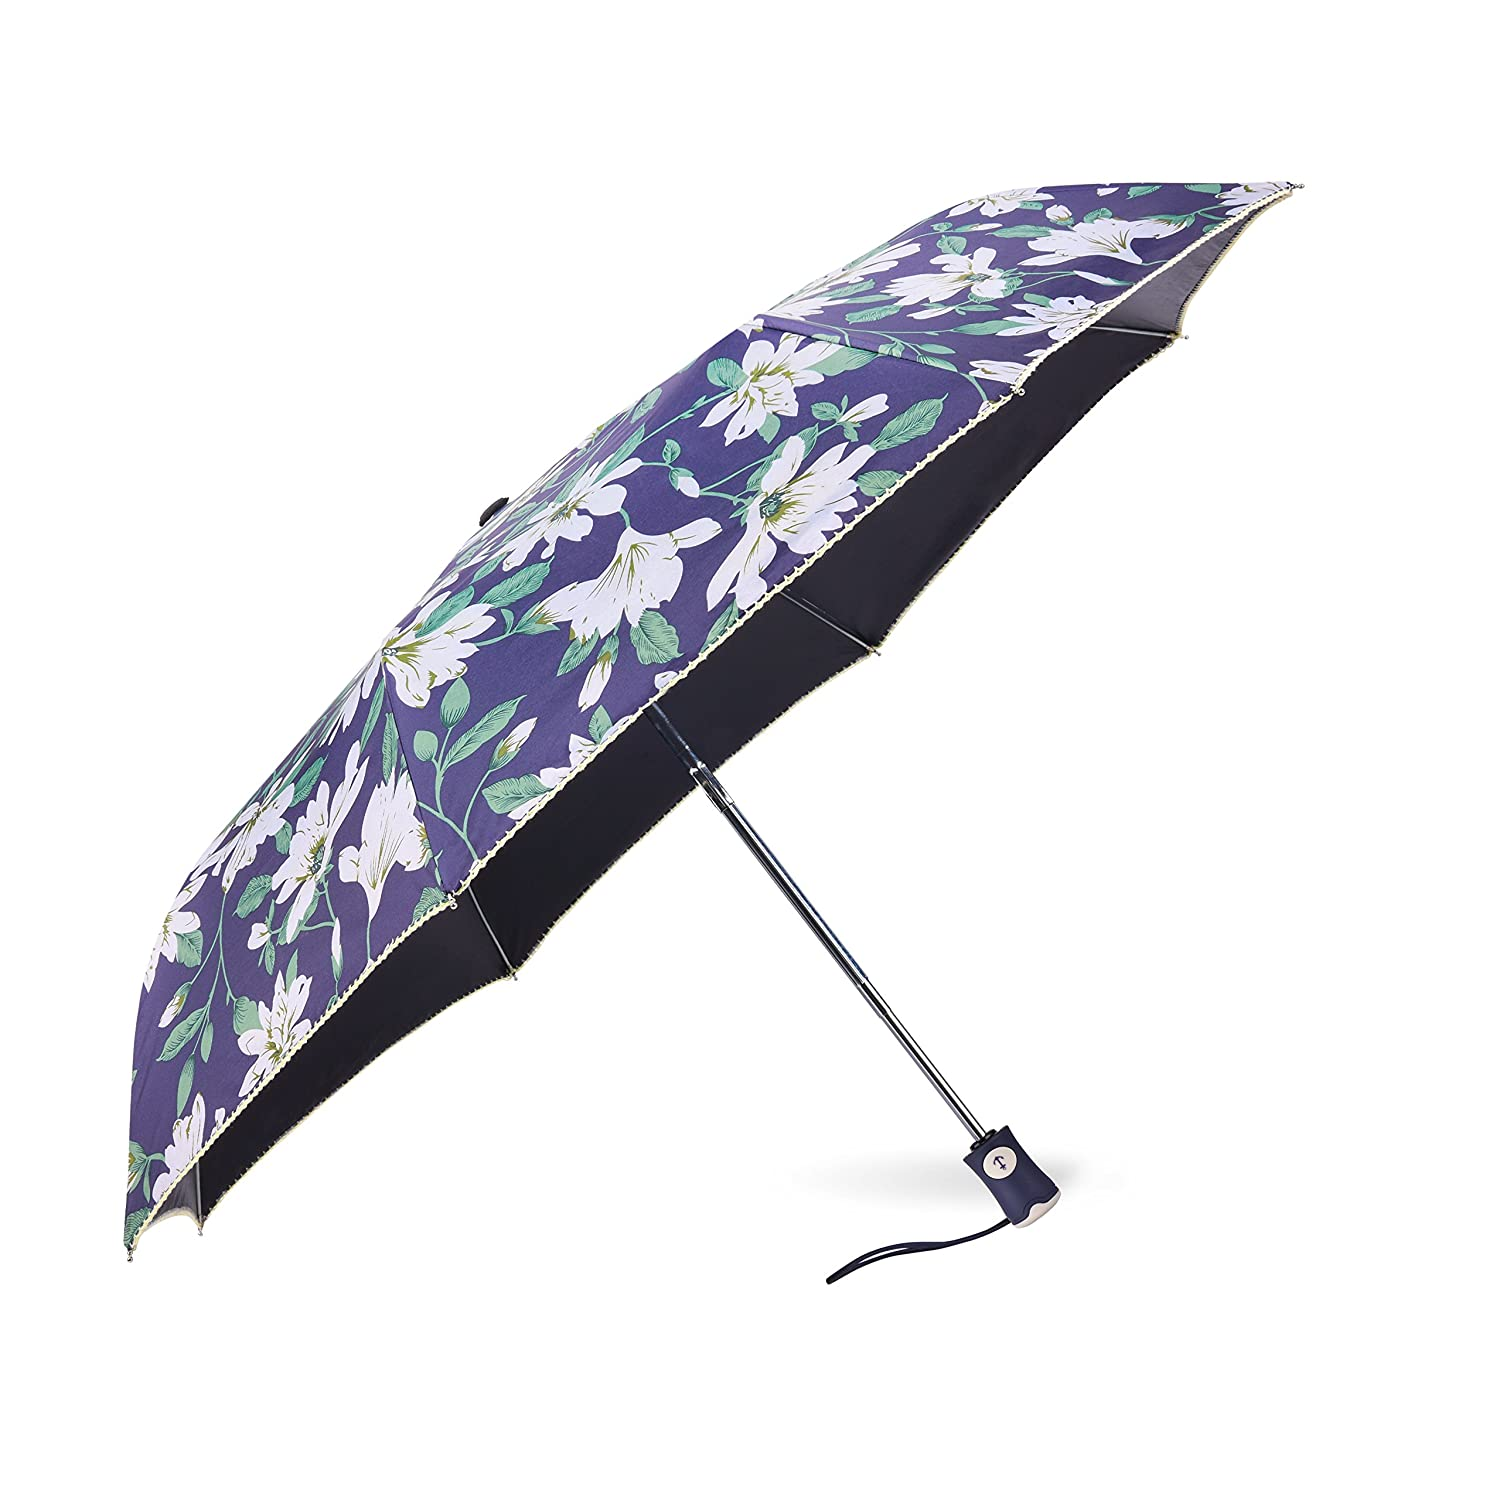 9aef315f477a Rainbrace UV Sun Umbrella Compact Folding Travel Umbrella Auto Open and  Close for Windproof, Rainproof & 99% UV Protection Parasol with Black  Anti-UV ...